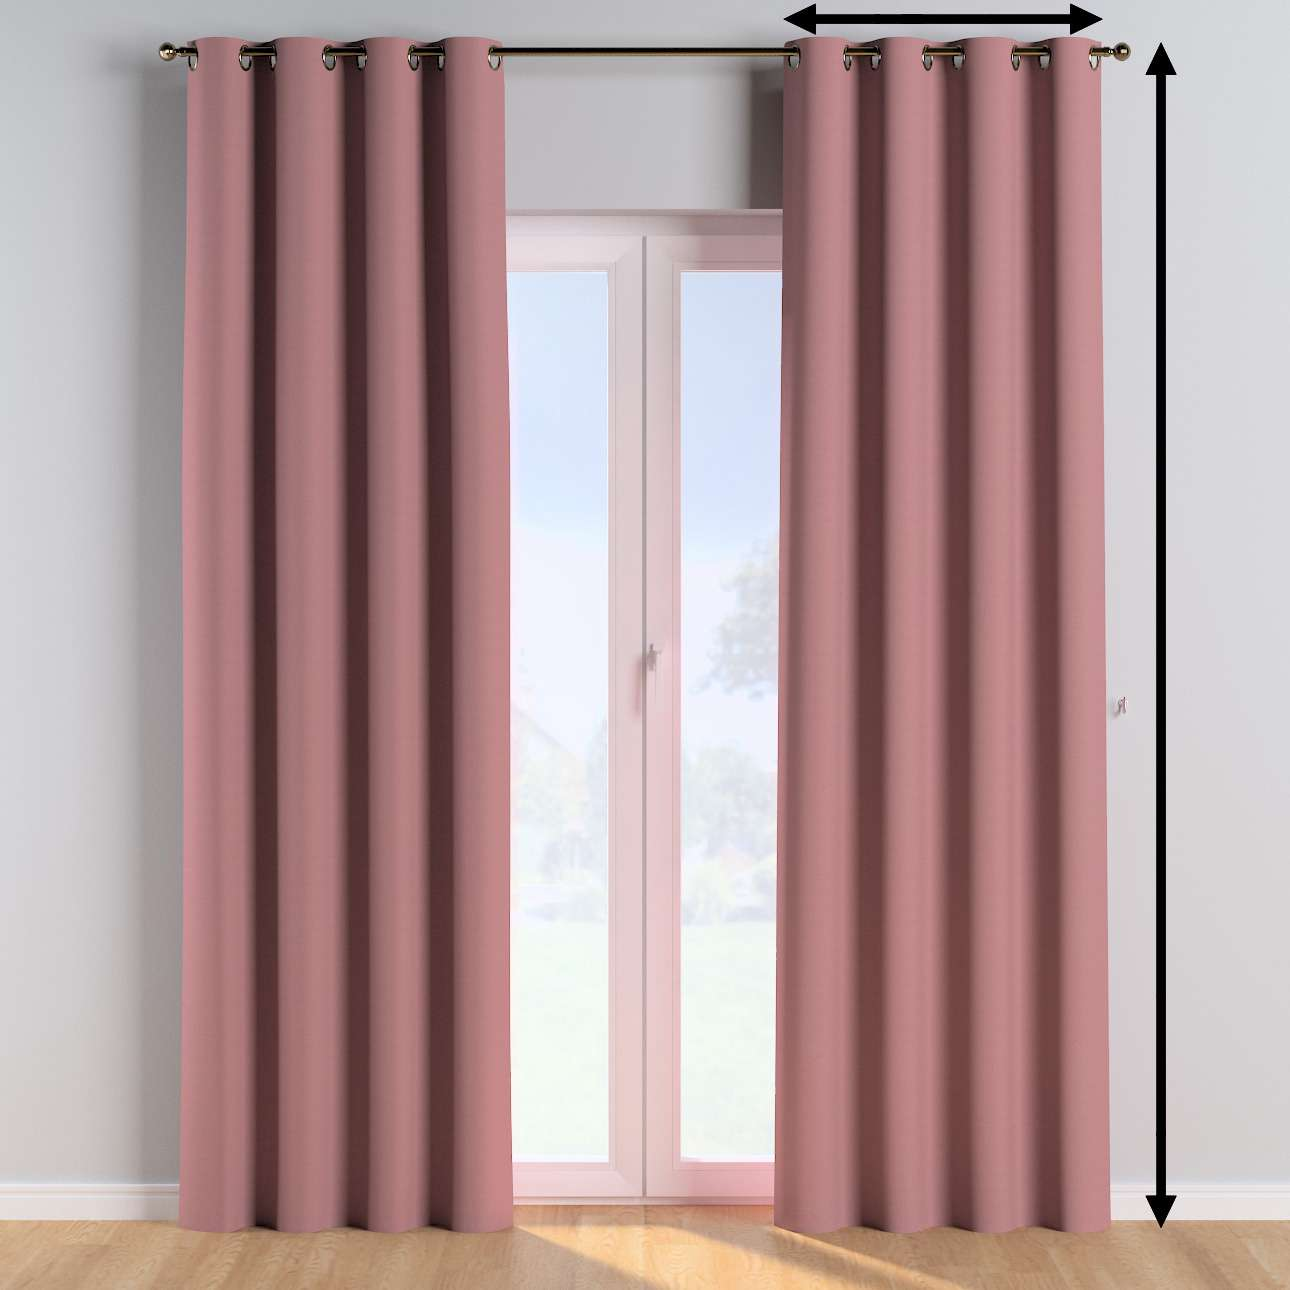 Eyelet curtains in collection Cotton Story, fabric: 702-43